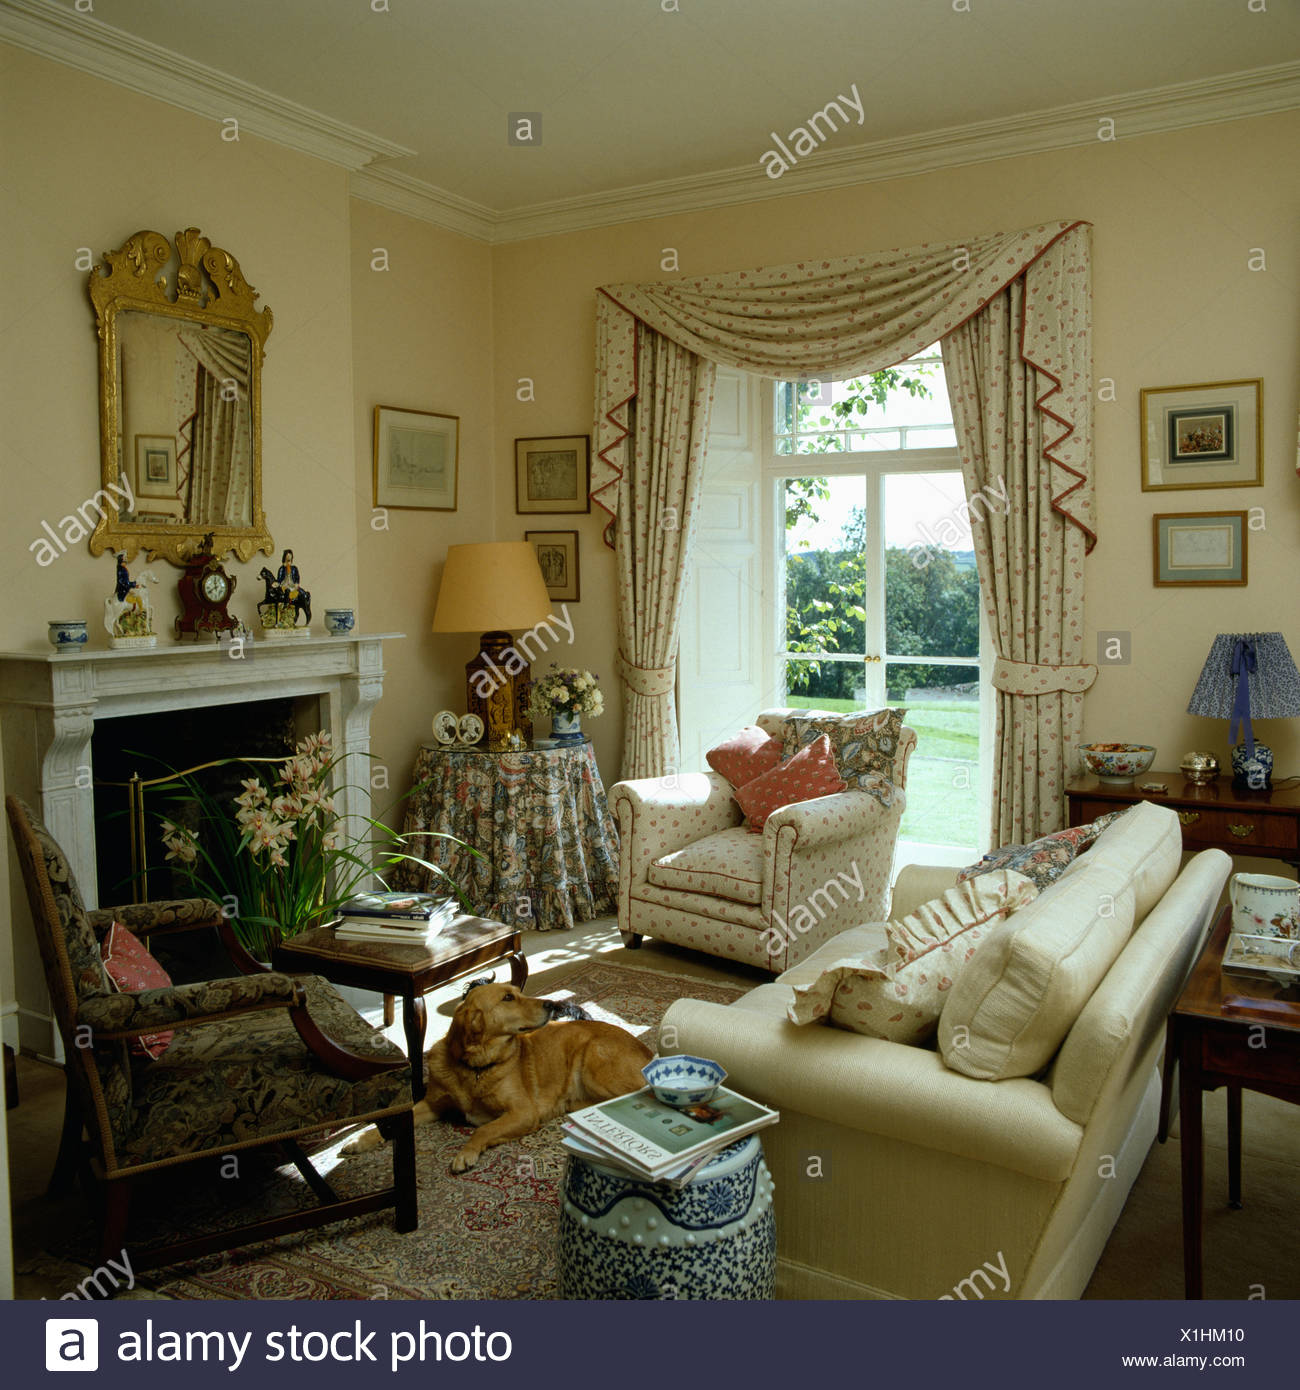 Stupendous Cream Armchair And Sofa In Small Country Living Room With Ibusinesslaw Wood Chair Design Ideas Ibusinesslaworg